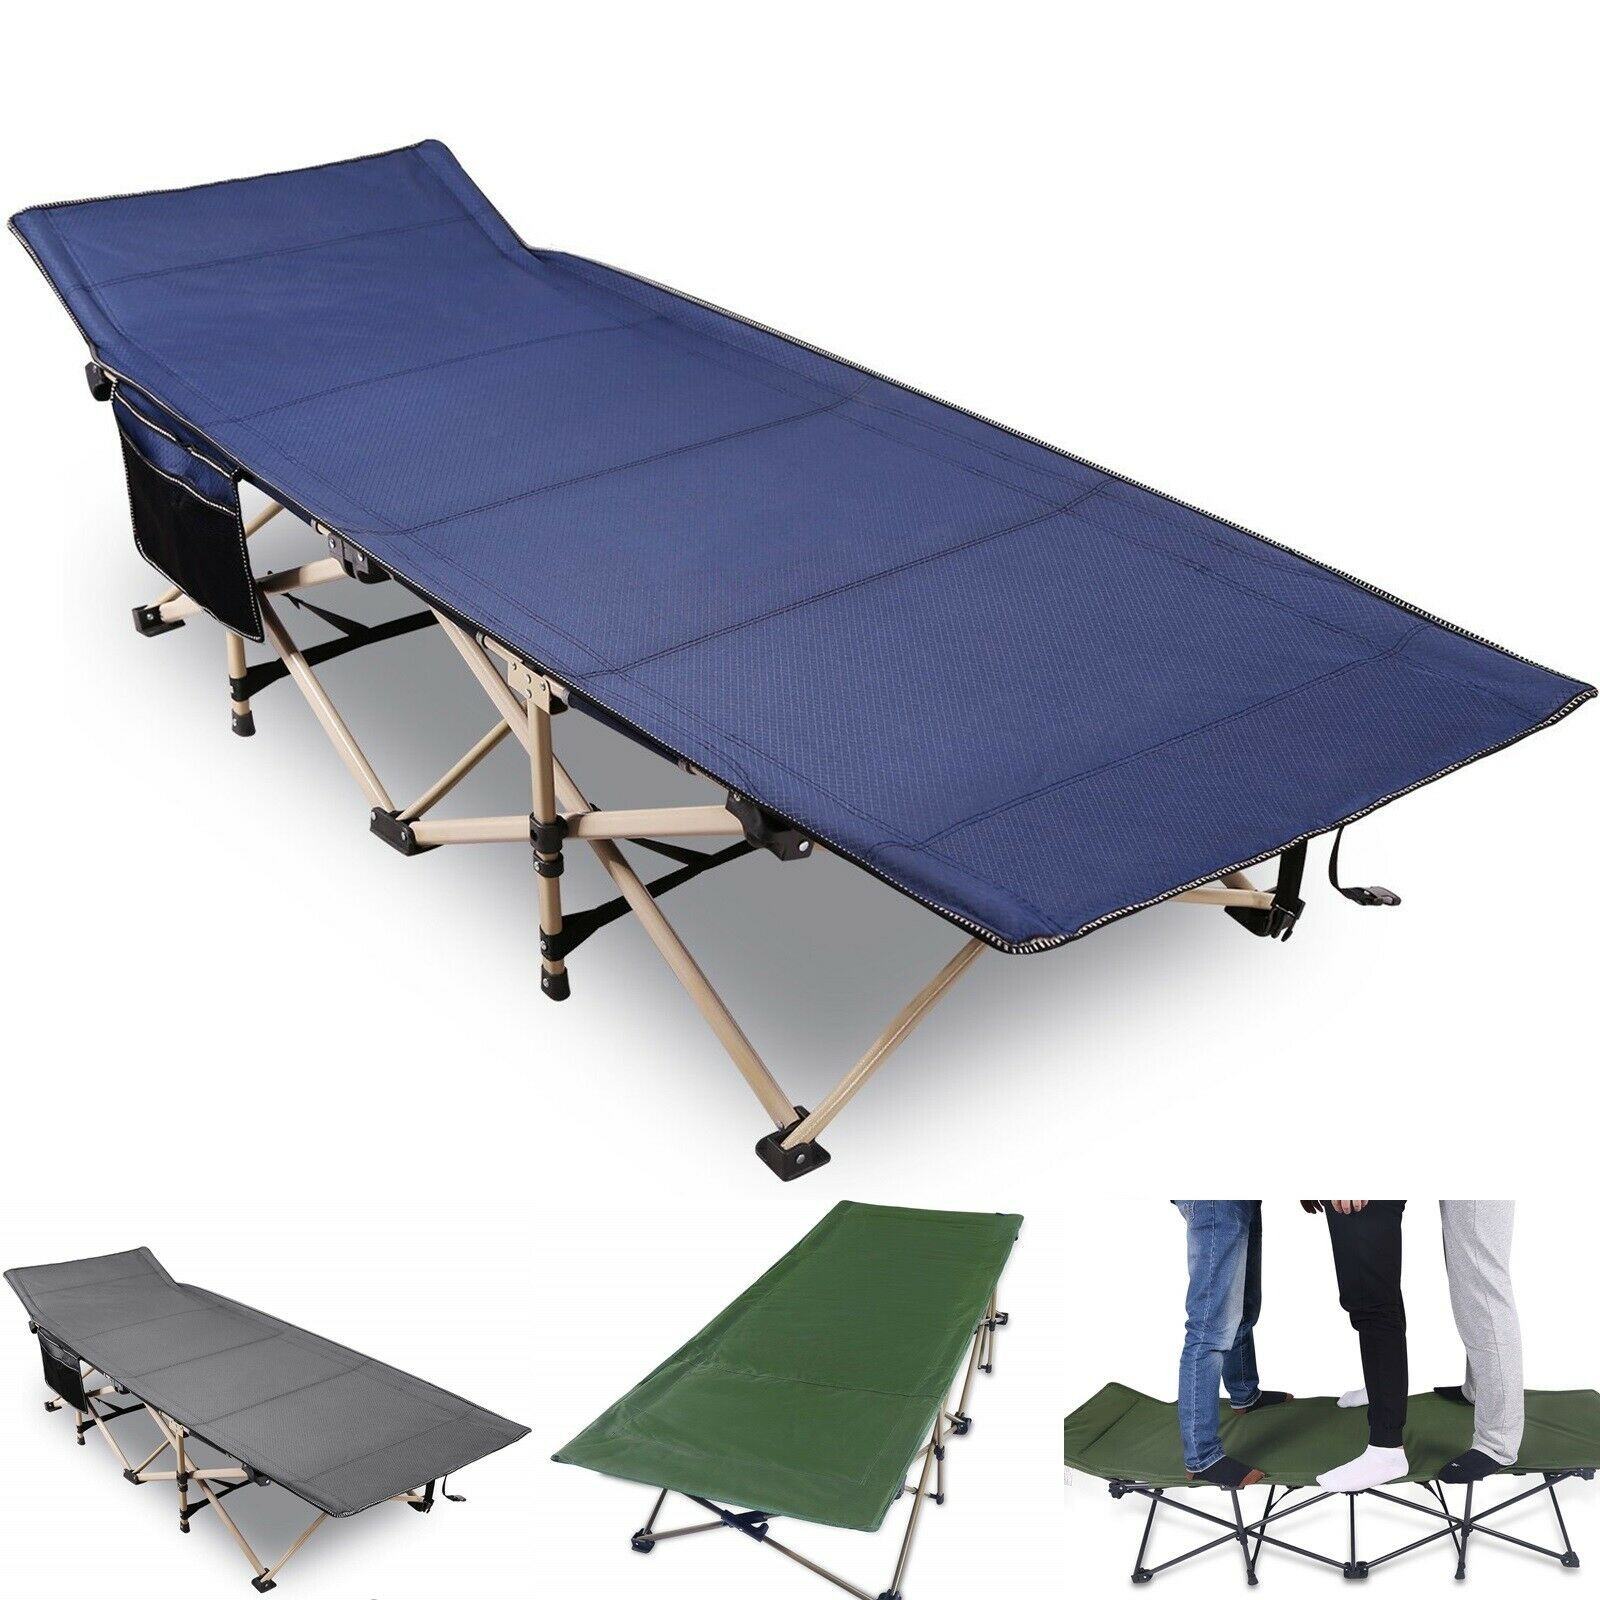 heavy duty folding camping cot for adult